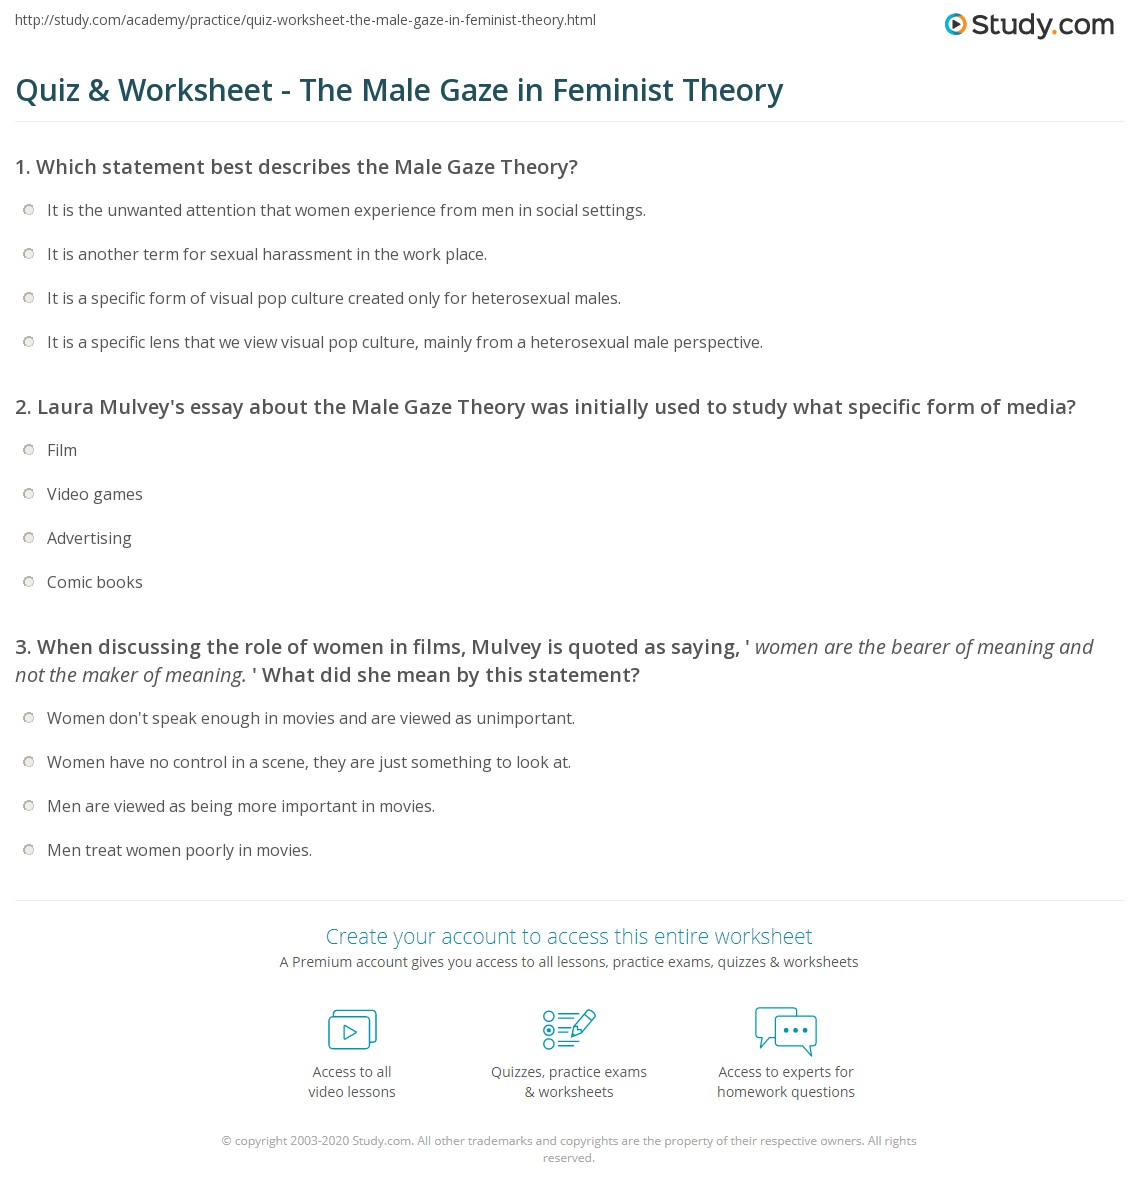 quiz worksheet the male gaze in feminist theory study com laura mulvey s essay about the male gaze theory was initially used to study what specific form of media